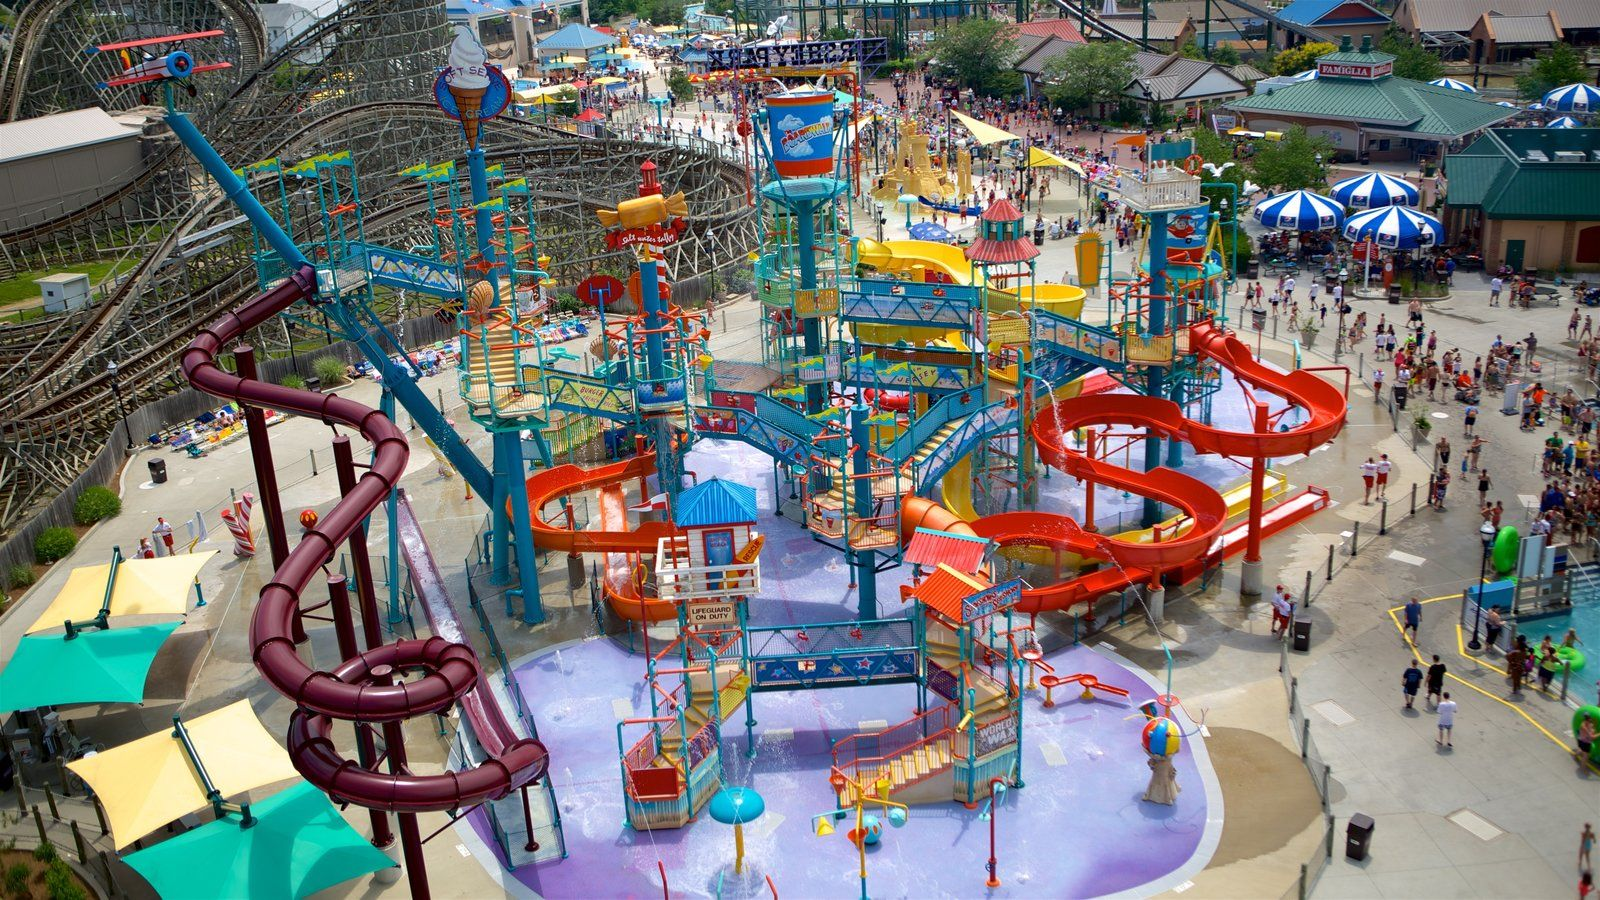 Hershey Park Pa For The Family Hershey Park Kids Attractions